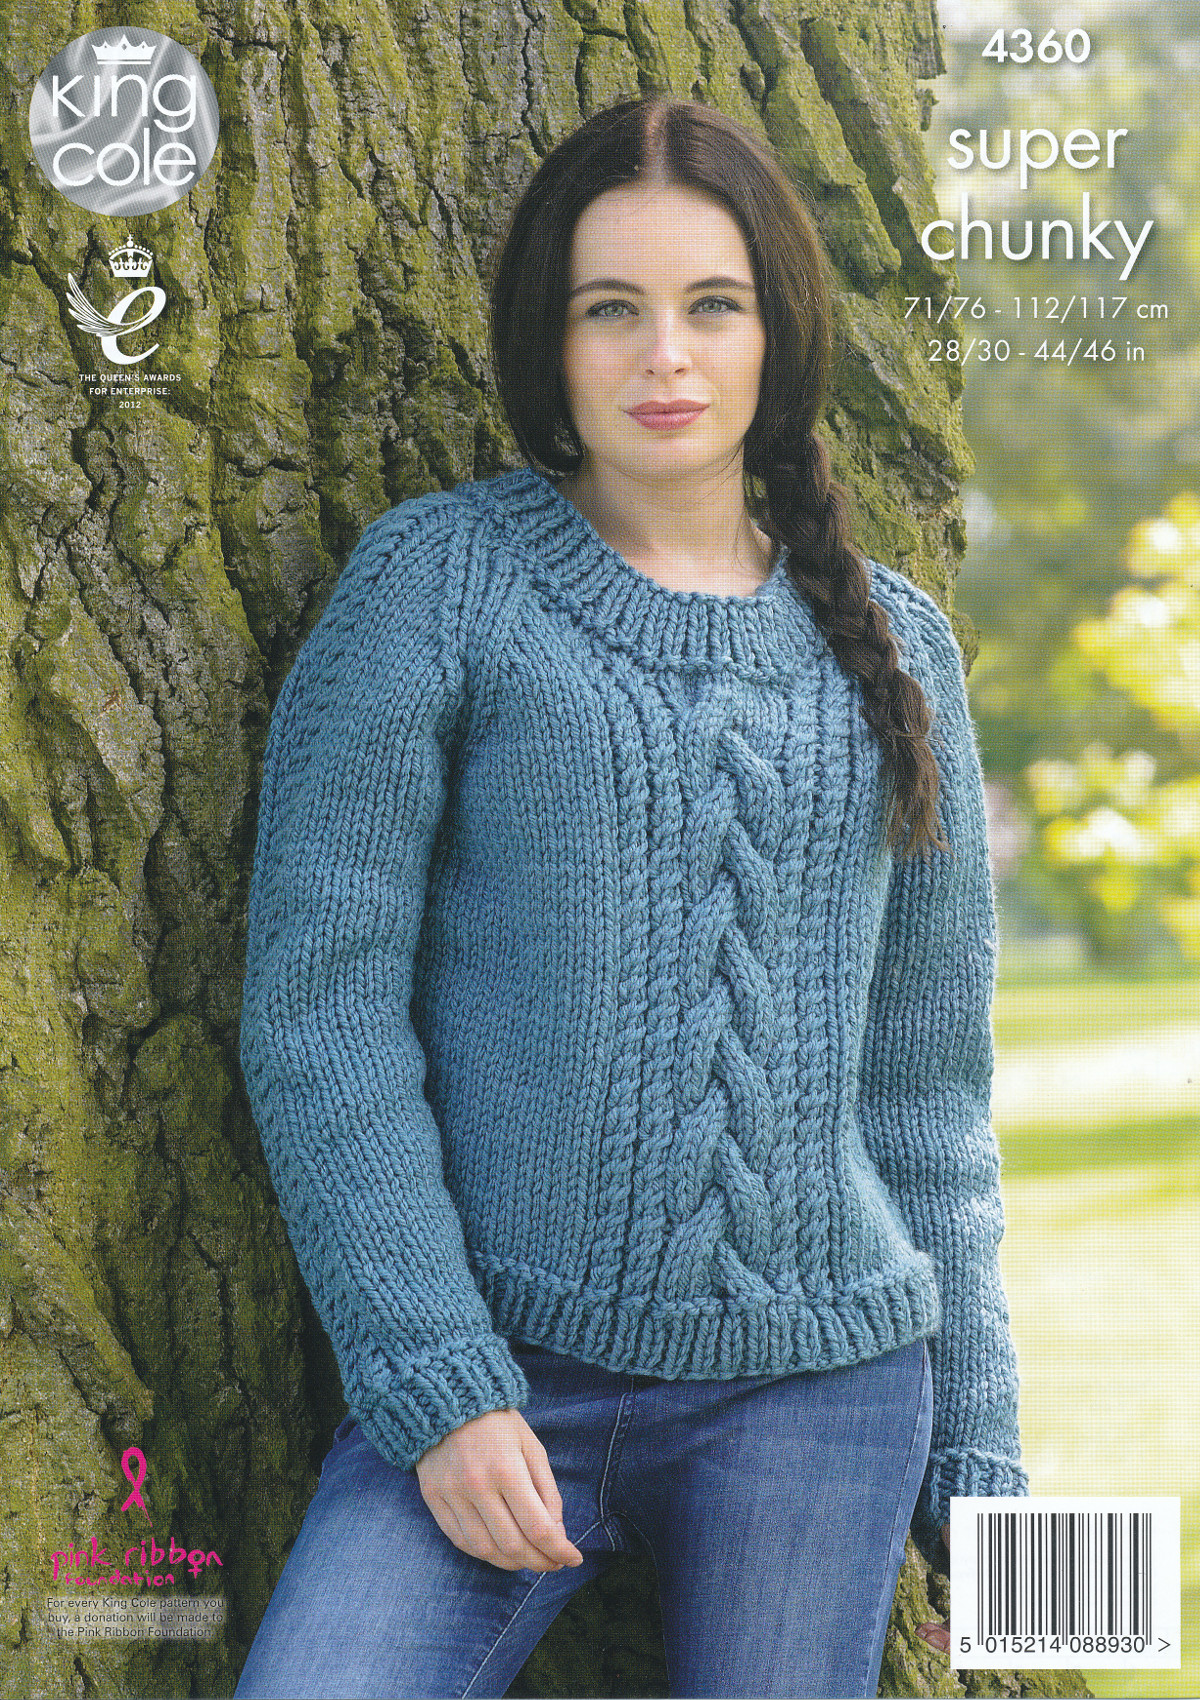 Knitting Patterns For Chunky Wool Cardigans : Ladies Super Chunky Knitting Pattern King Cole Cable Knit Sweaters Jumpers 43...